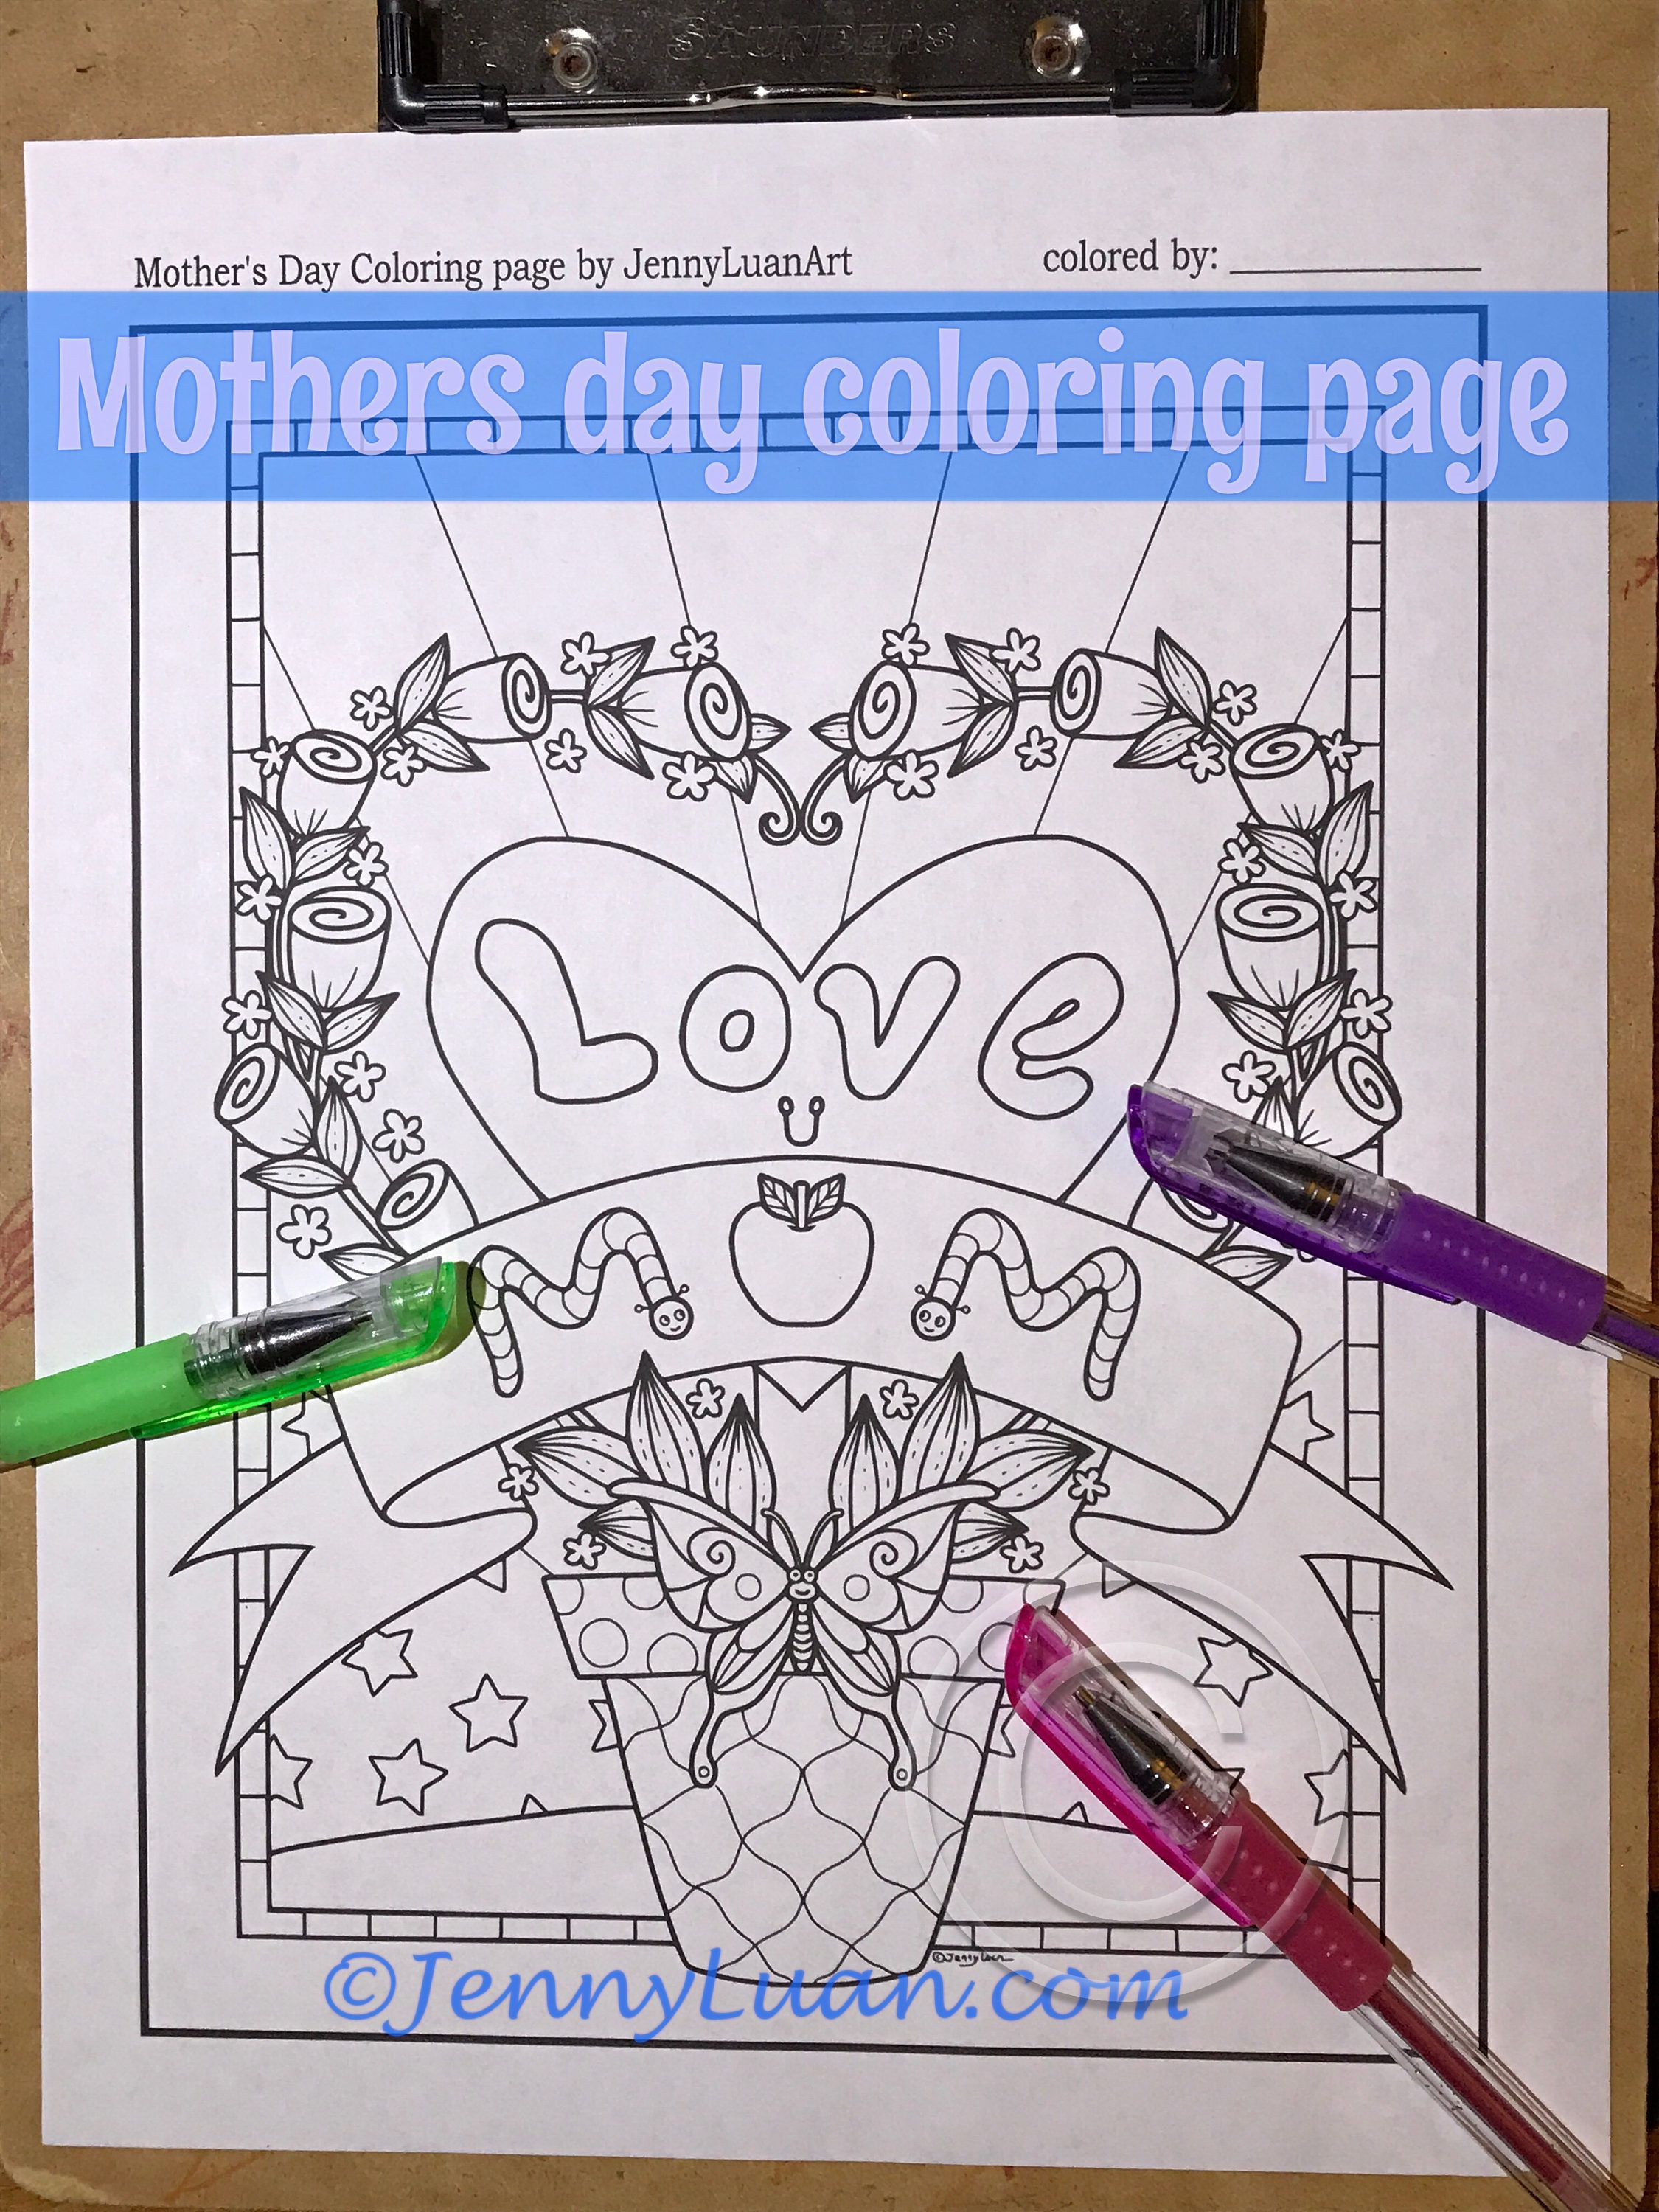 I Love You Mom Flower Butterfly Adult Coloring Page By Jenny Luan By